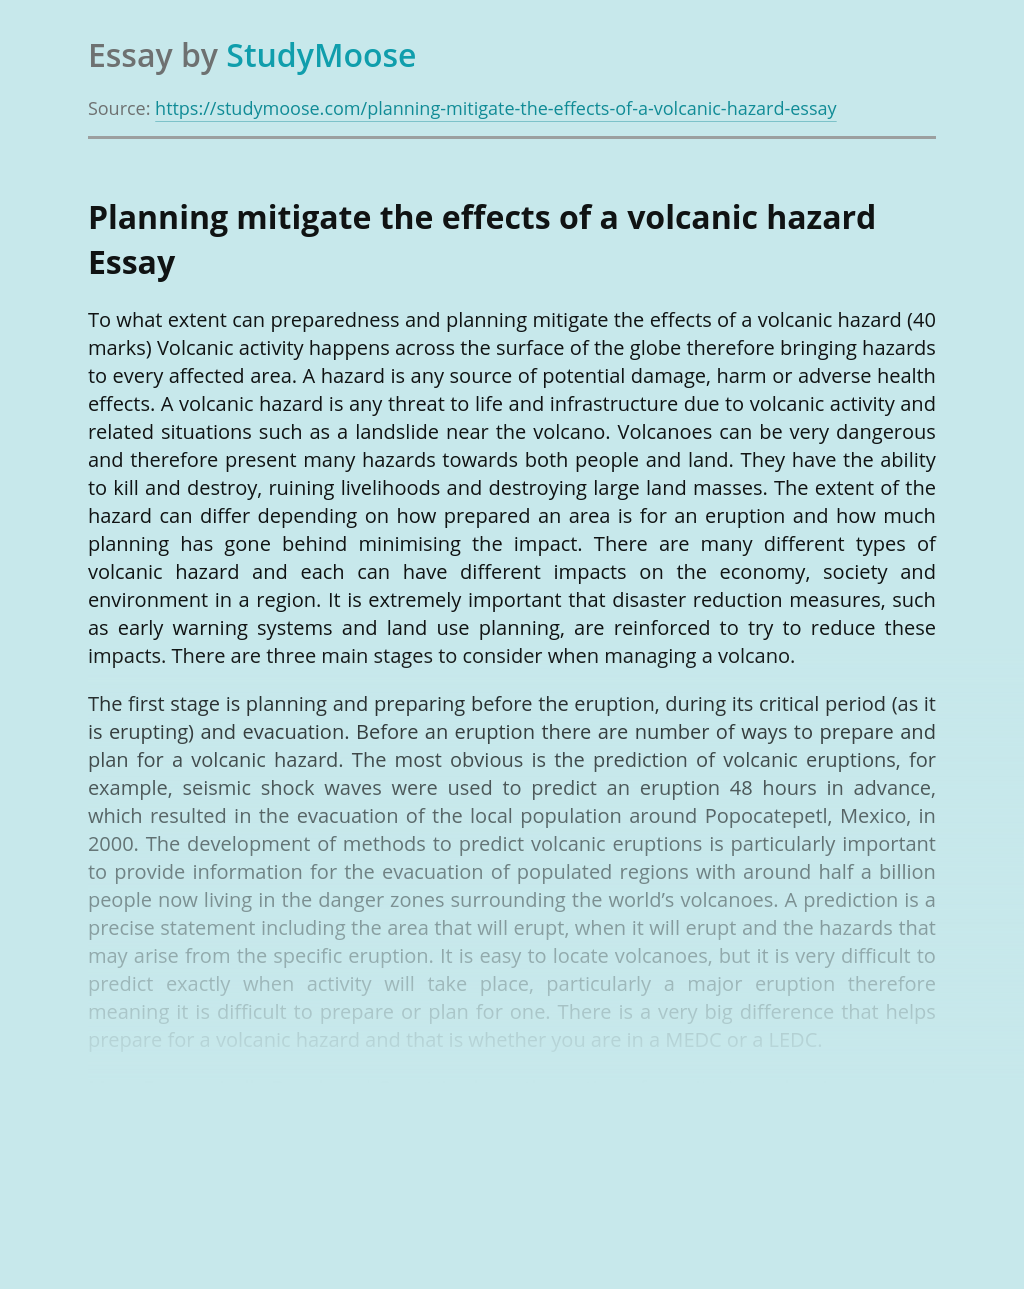 The Effects of a Volcanic Hazard